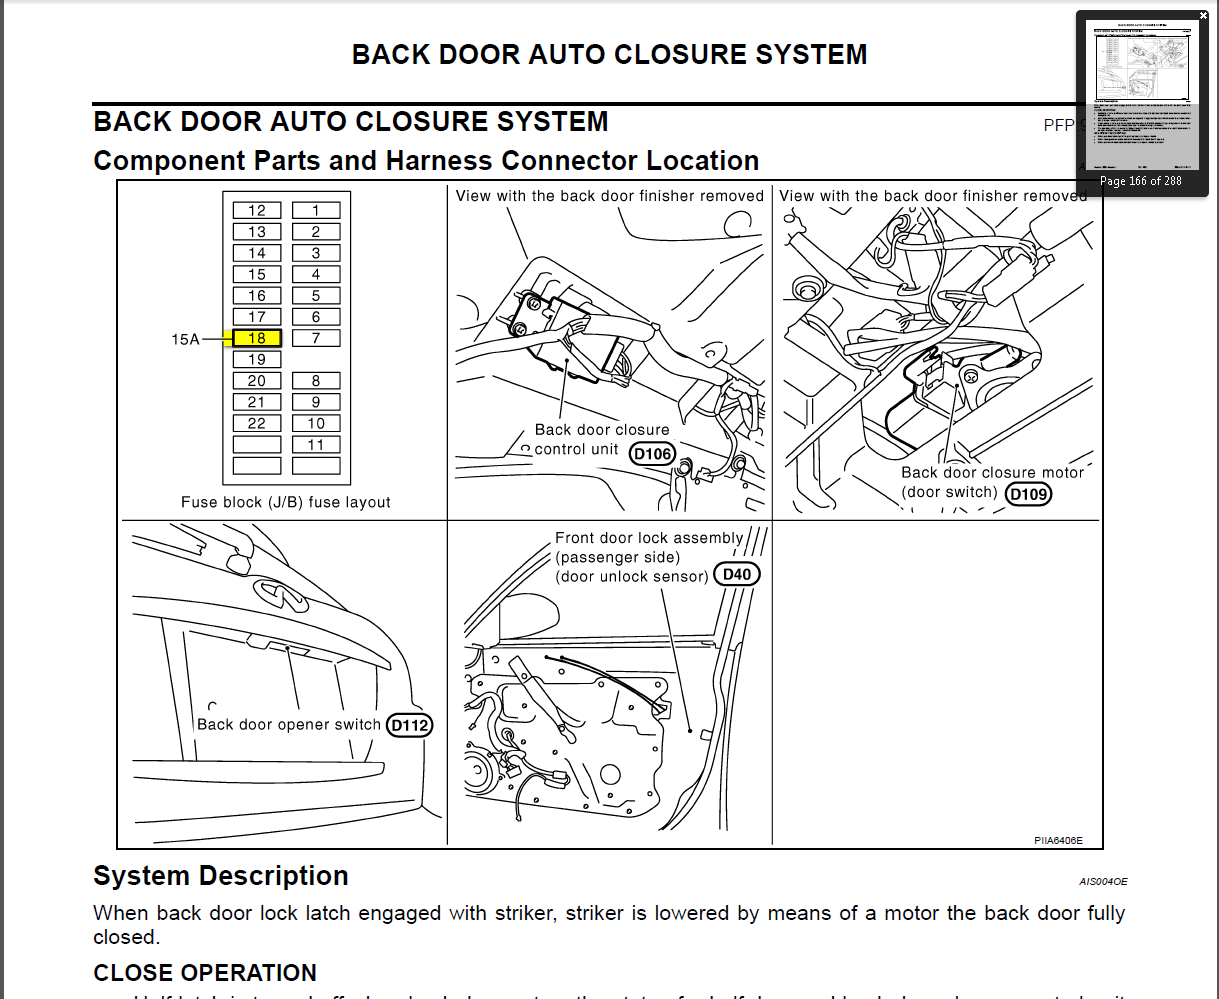 2012 08 08_191437_backdoor infiniti fx35 fuse box location location of 2005 pacifica fuse box infiniti fuse box diagram at bayanpartner.co